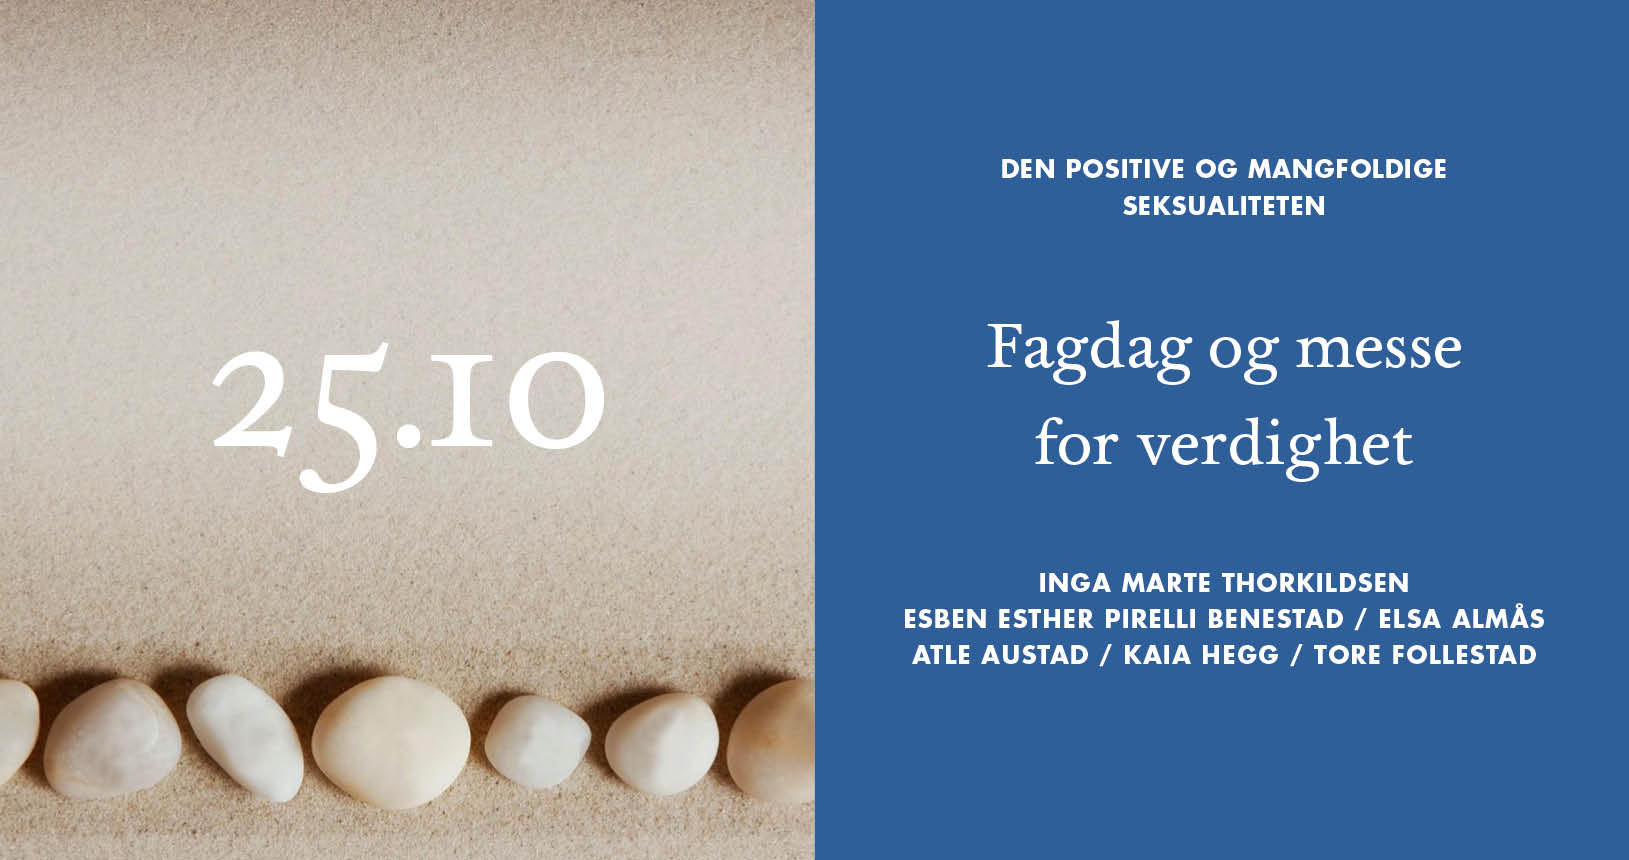 Fagdag og messe for verdighet